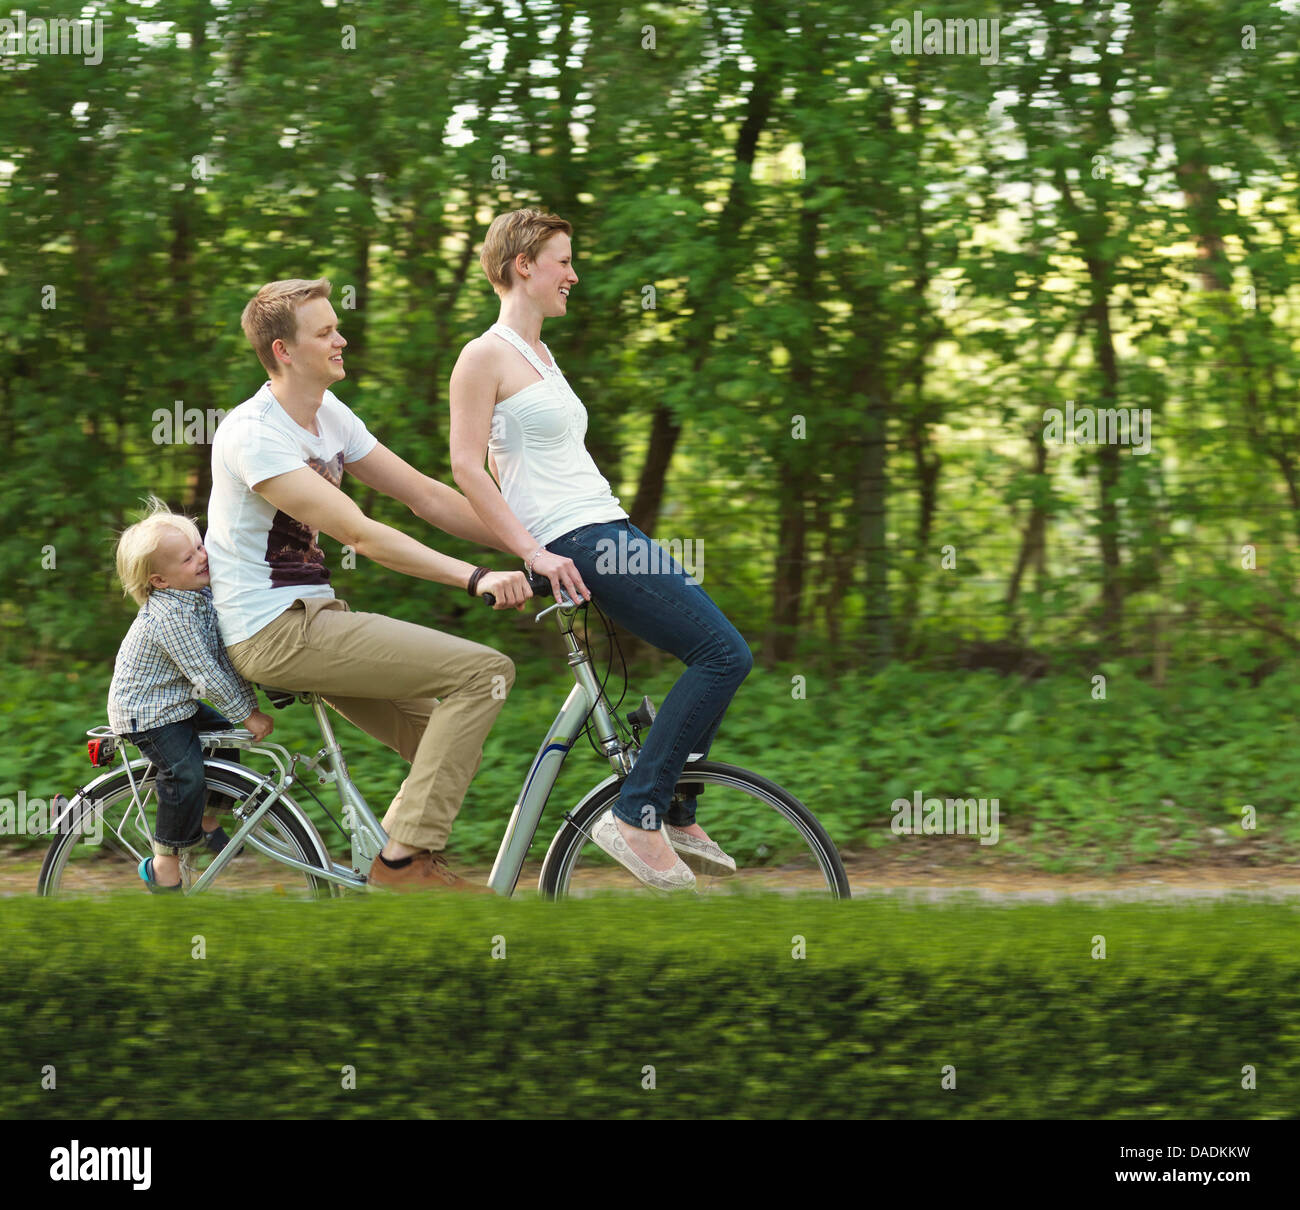 Family with one child riding on bicycle together - Stock Image